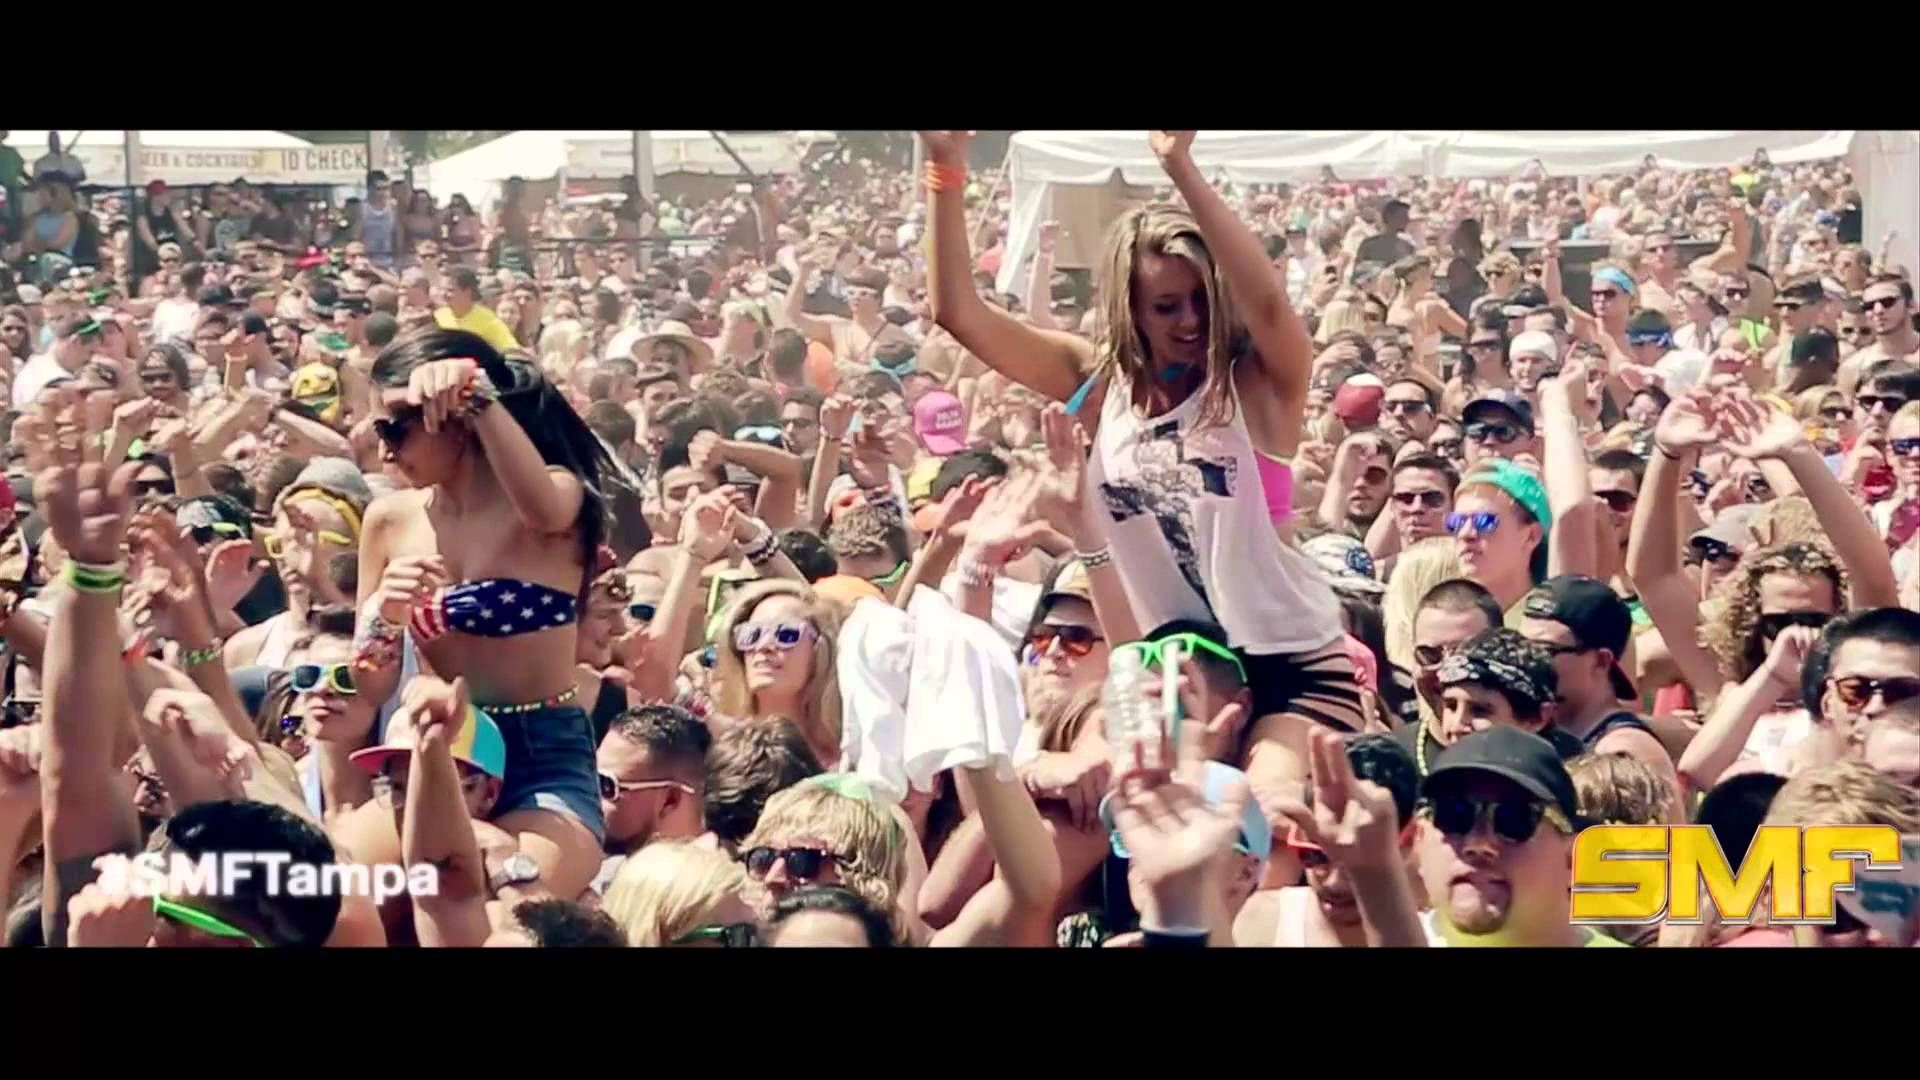 Pin On Edm Events